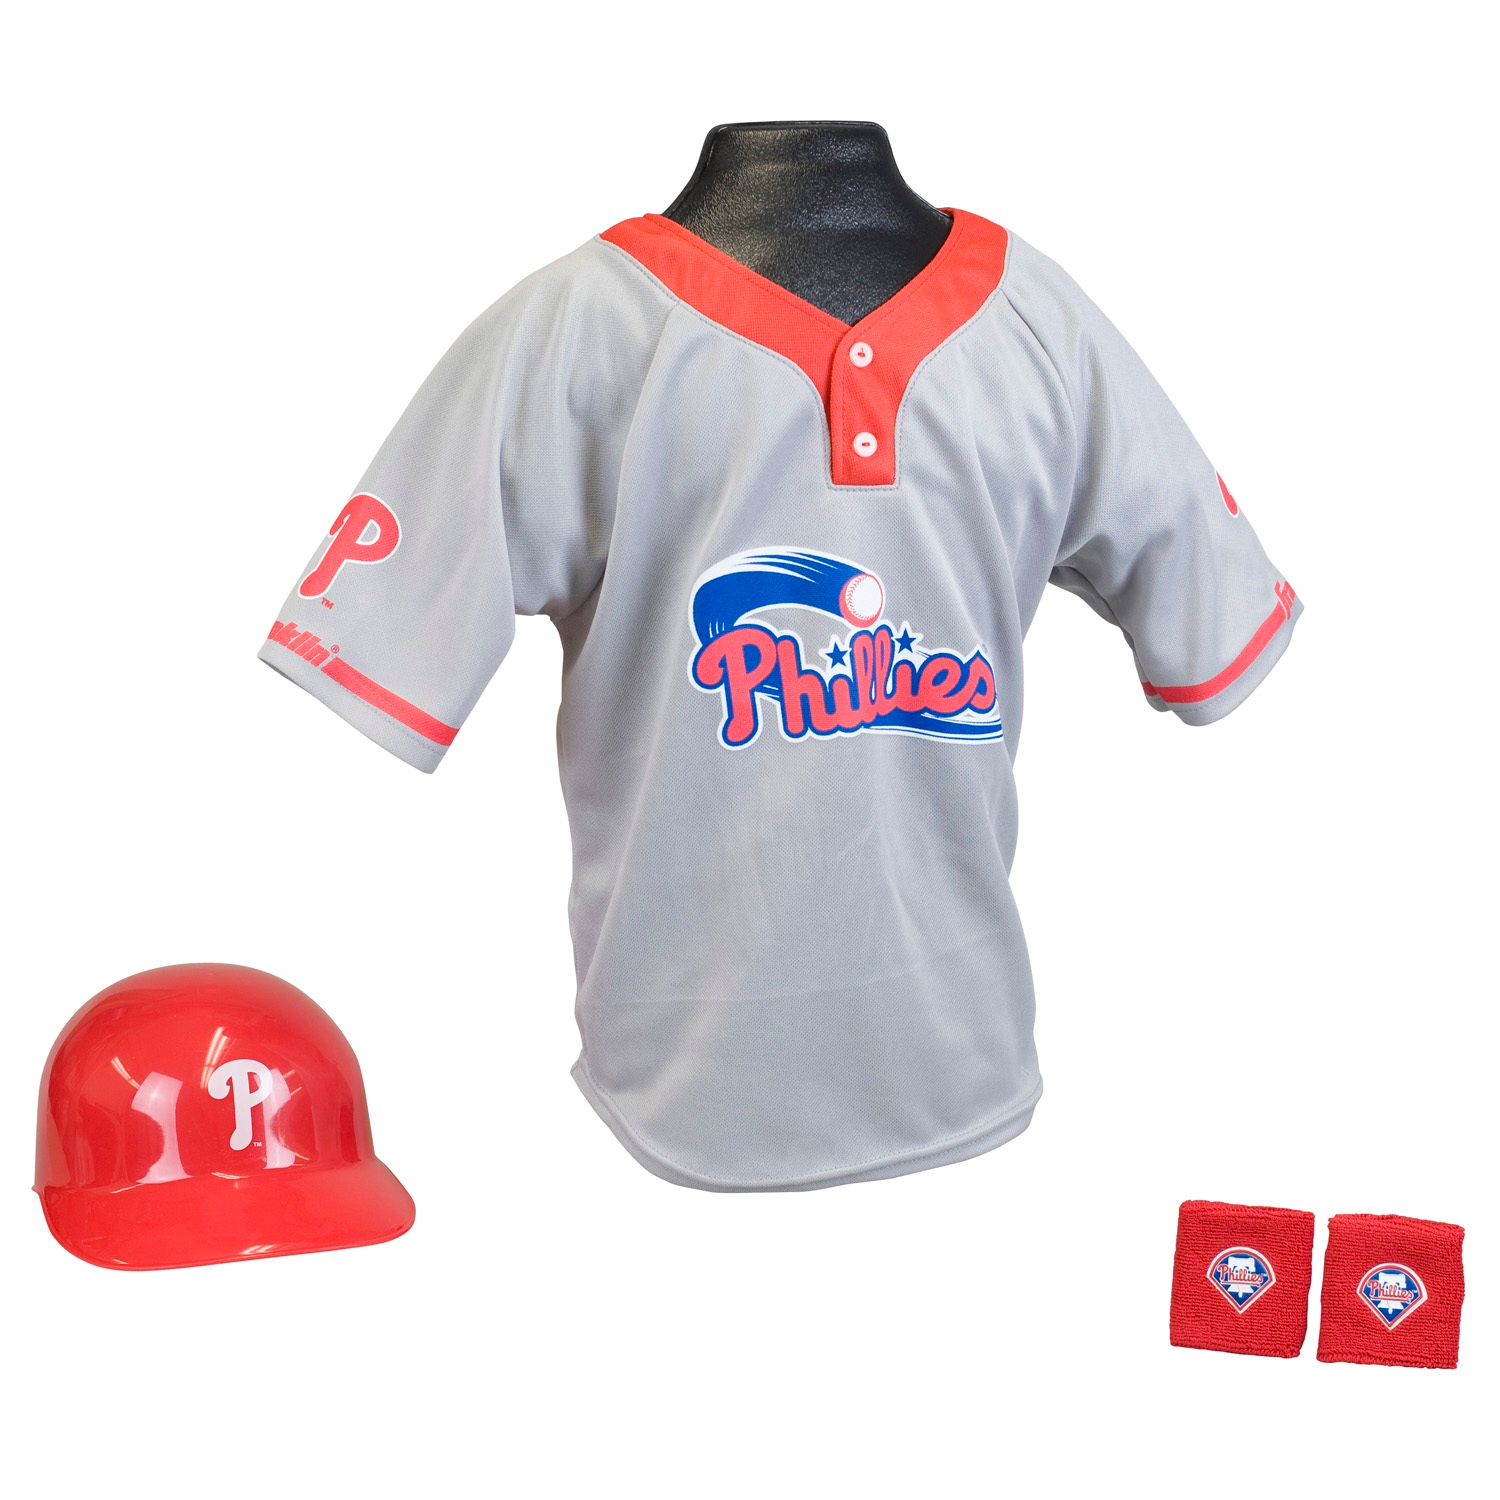 Philadelphia Phillies MLB Youth Uniform Set Halloween Costume